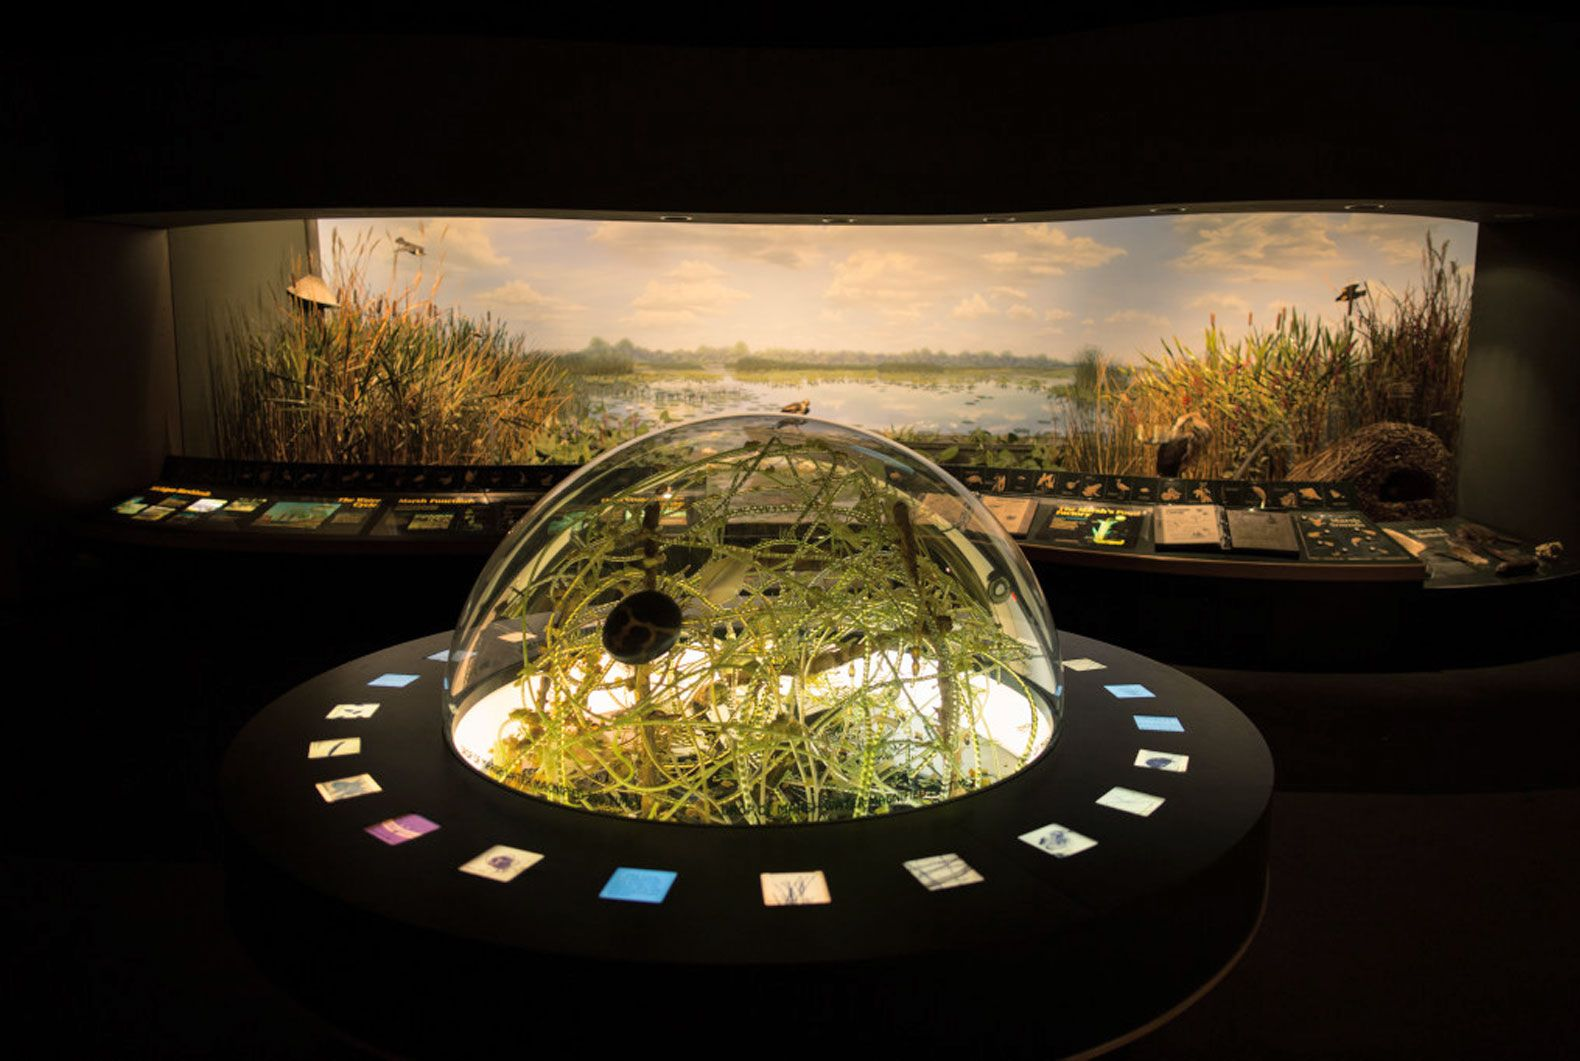 """The museum's """"Western Michigan Habitats"""" exhibit reinforces the school's place-based learning philosophy—displaying common ecosystems found in the region, such as the marshland pictured here."""